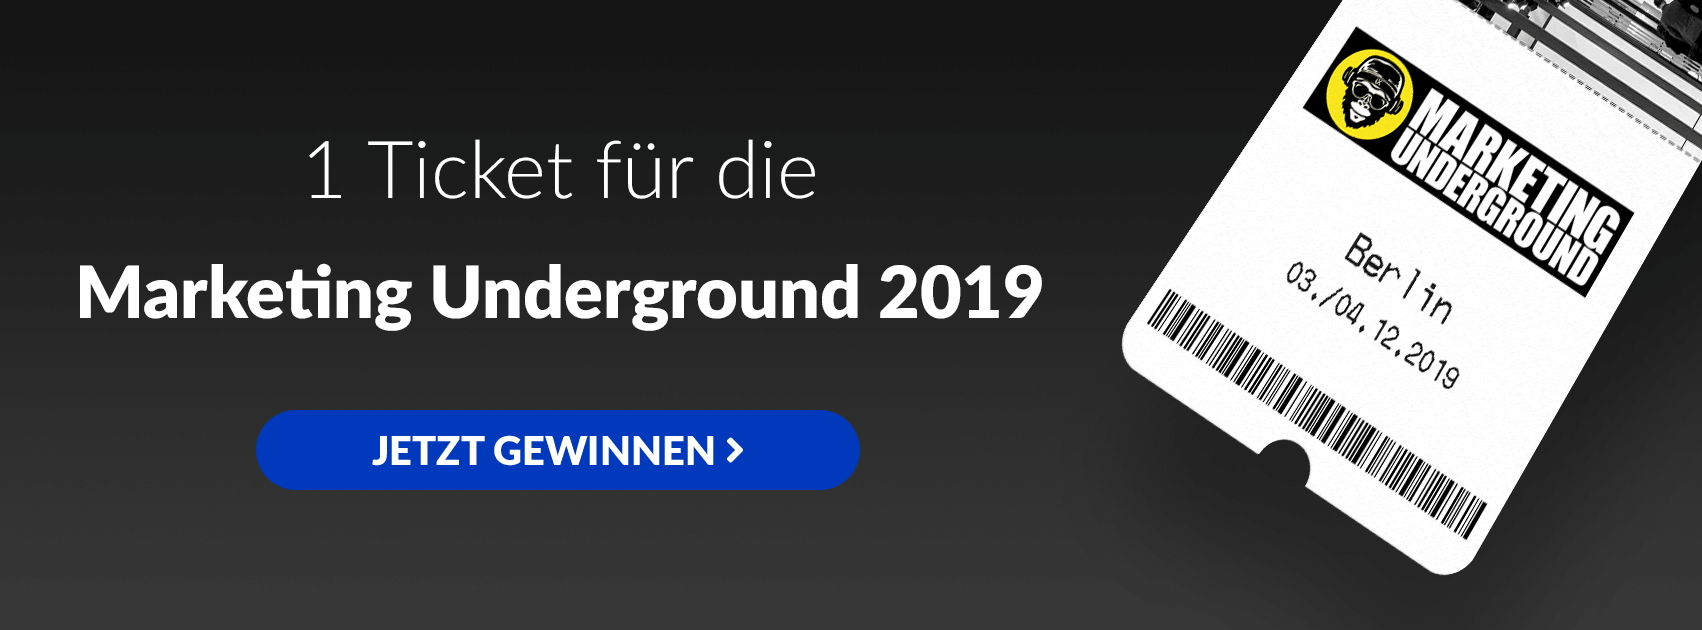 GrowthUp - Verlosung Marketing Underground